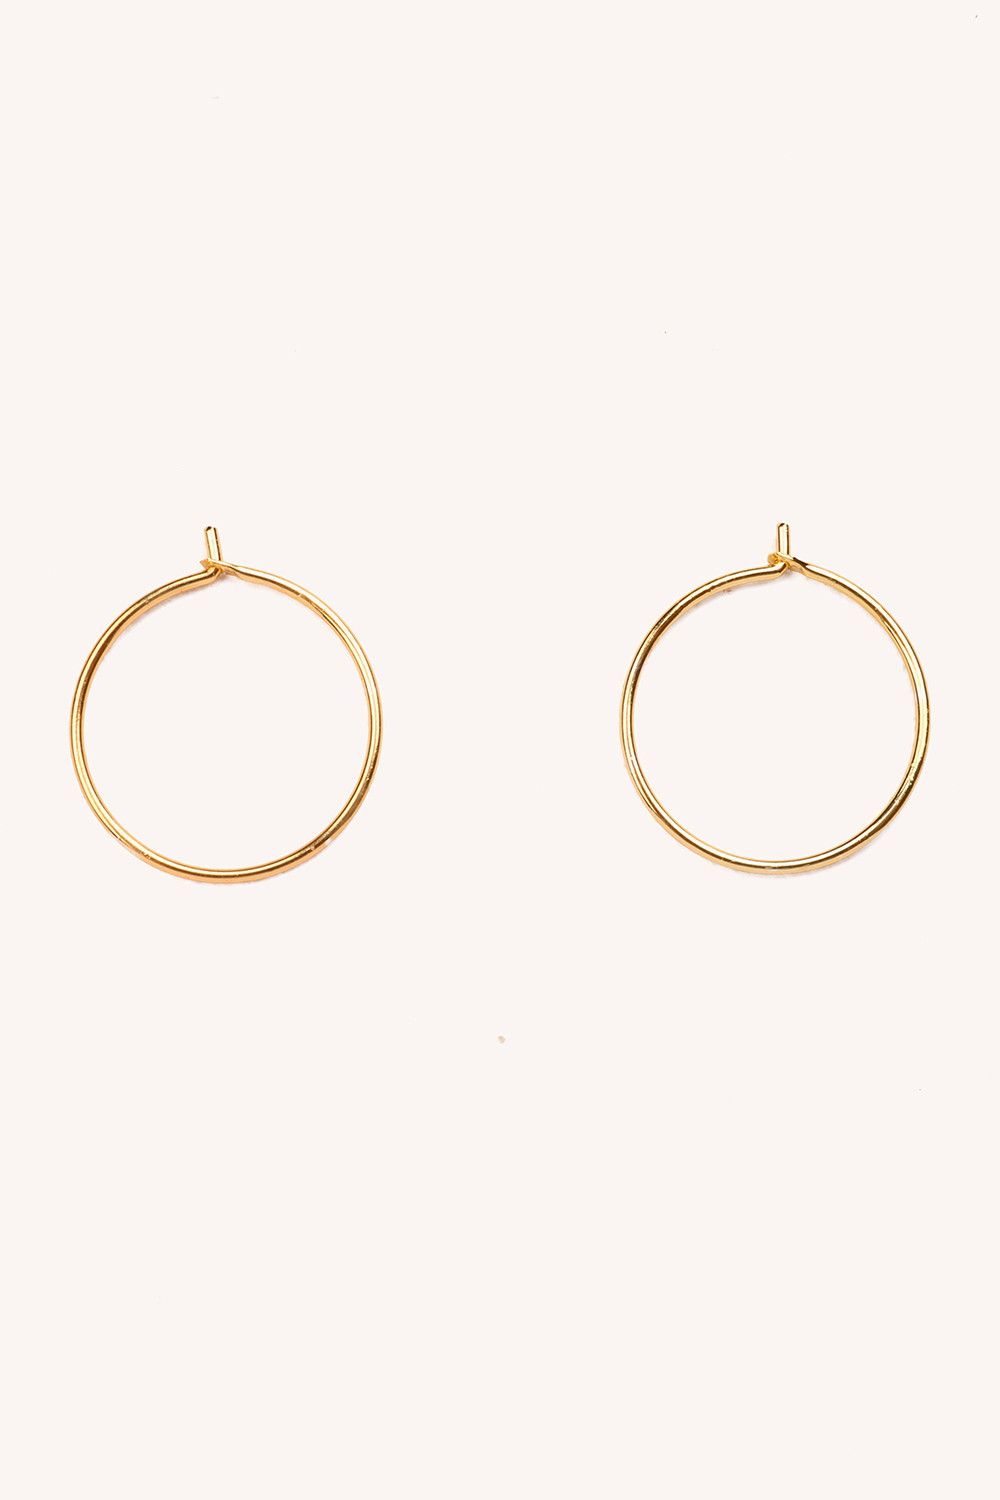 cd6ea0bd6 GOLDEN HOOP EARRINGS £3 Brandy Melville Outfits, Small Gold Hoops, Small  Gold Hoop